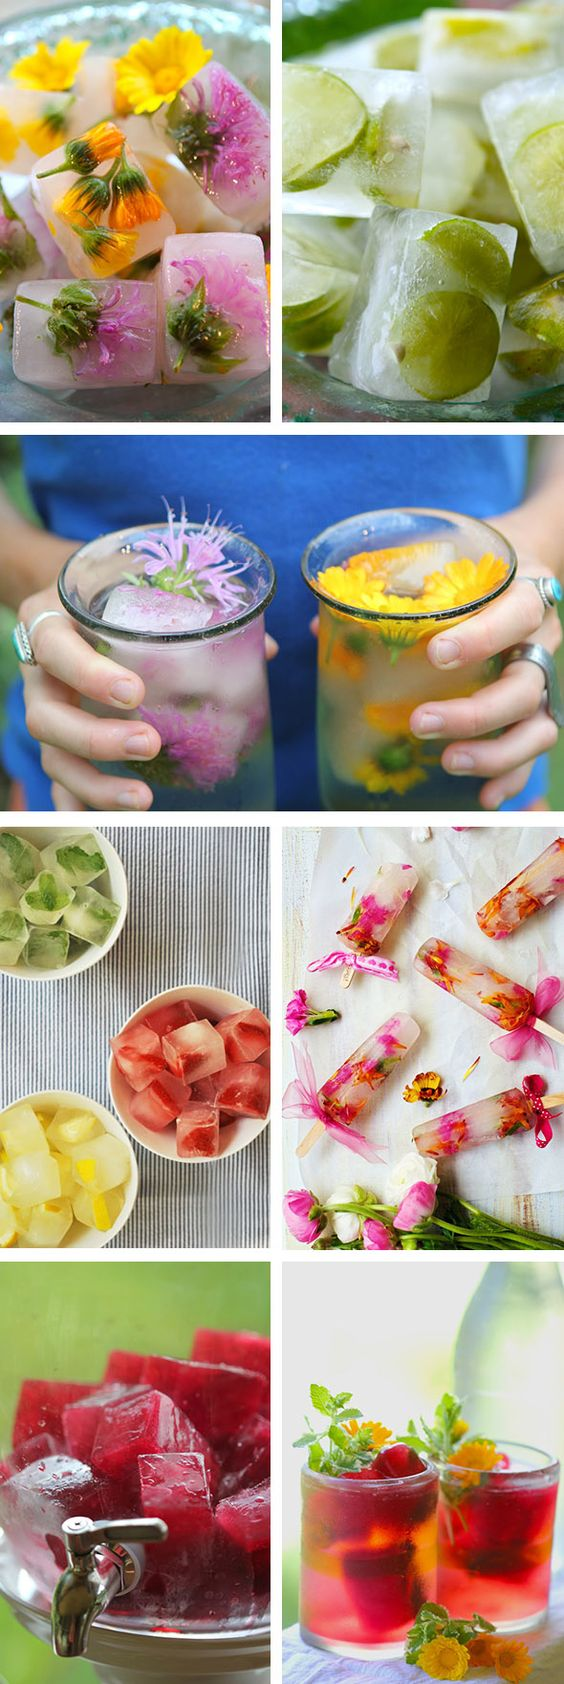 Ice cubes floral edible flowers from bridal bar blog / Creative Wedding Cocktail Ideas with Ice!: